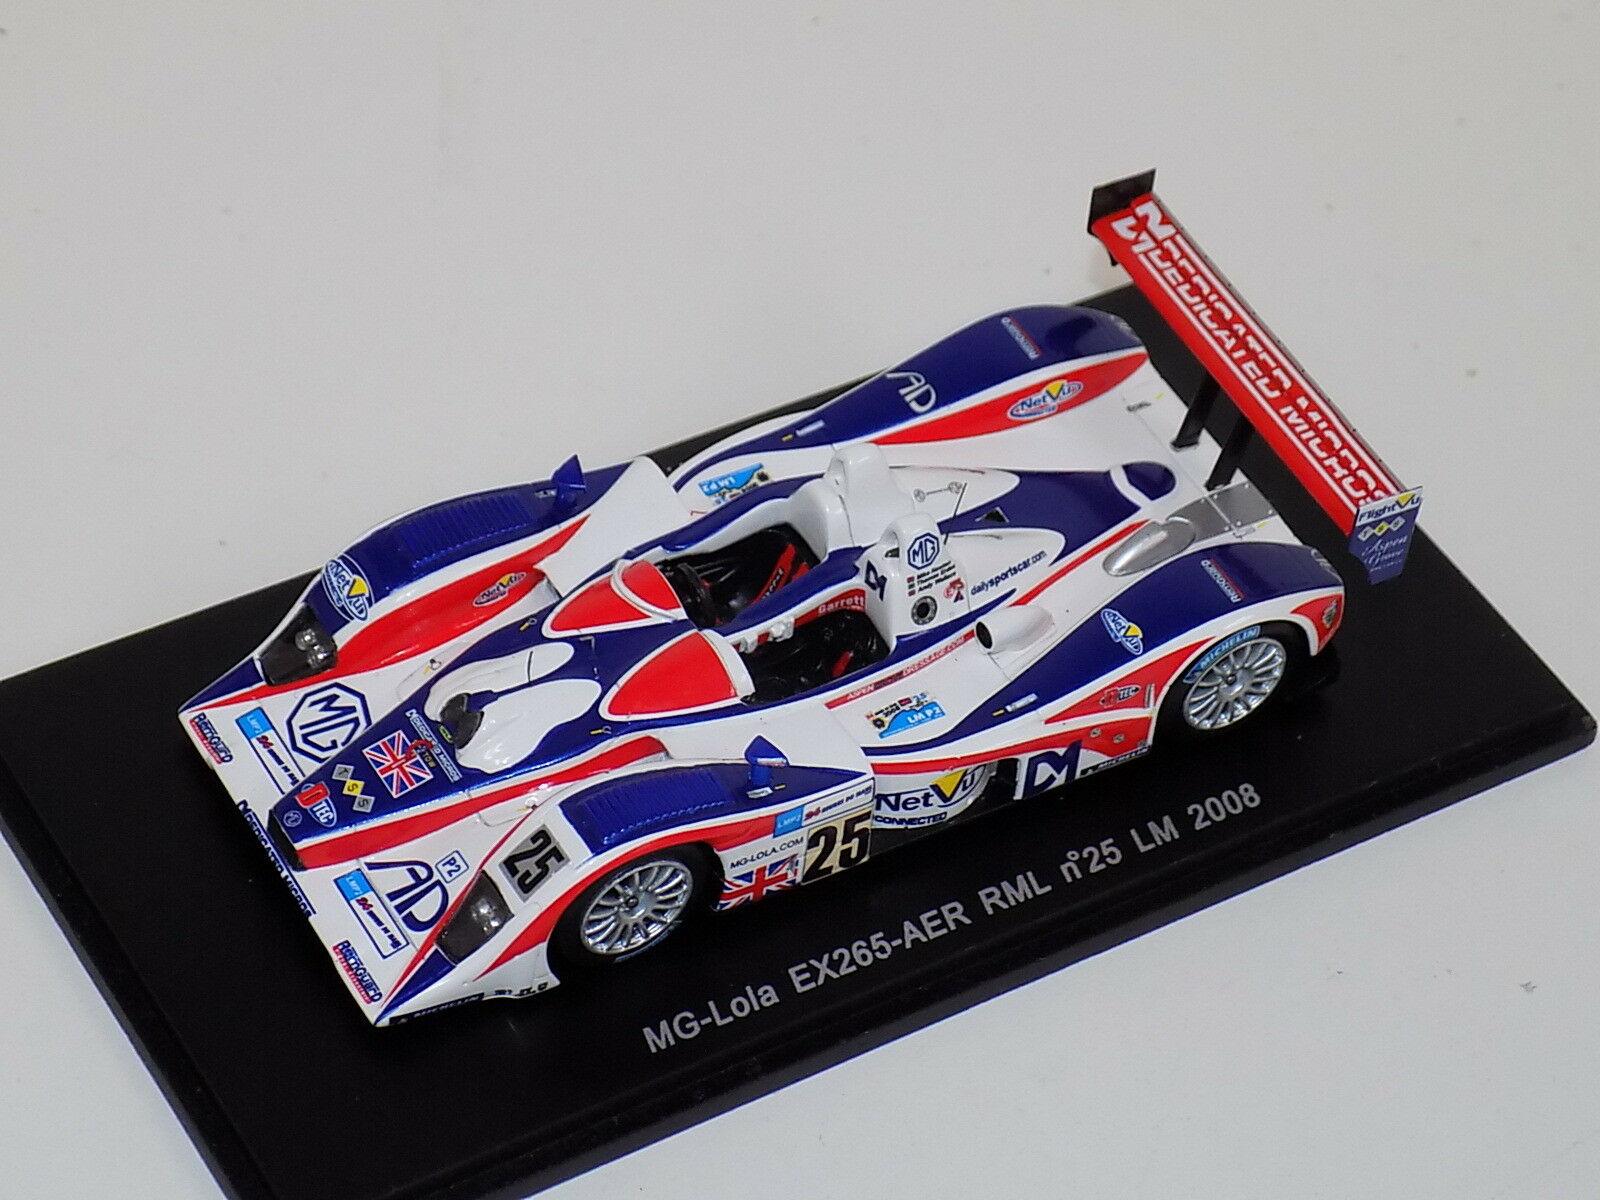 1 43 Spark  MG - Lola EX265   Car Hours of LeMans  2008  S1439